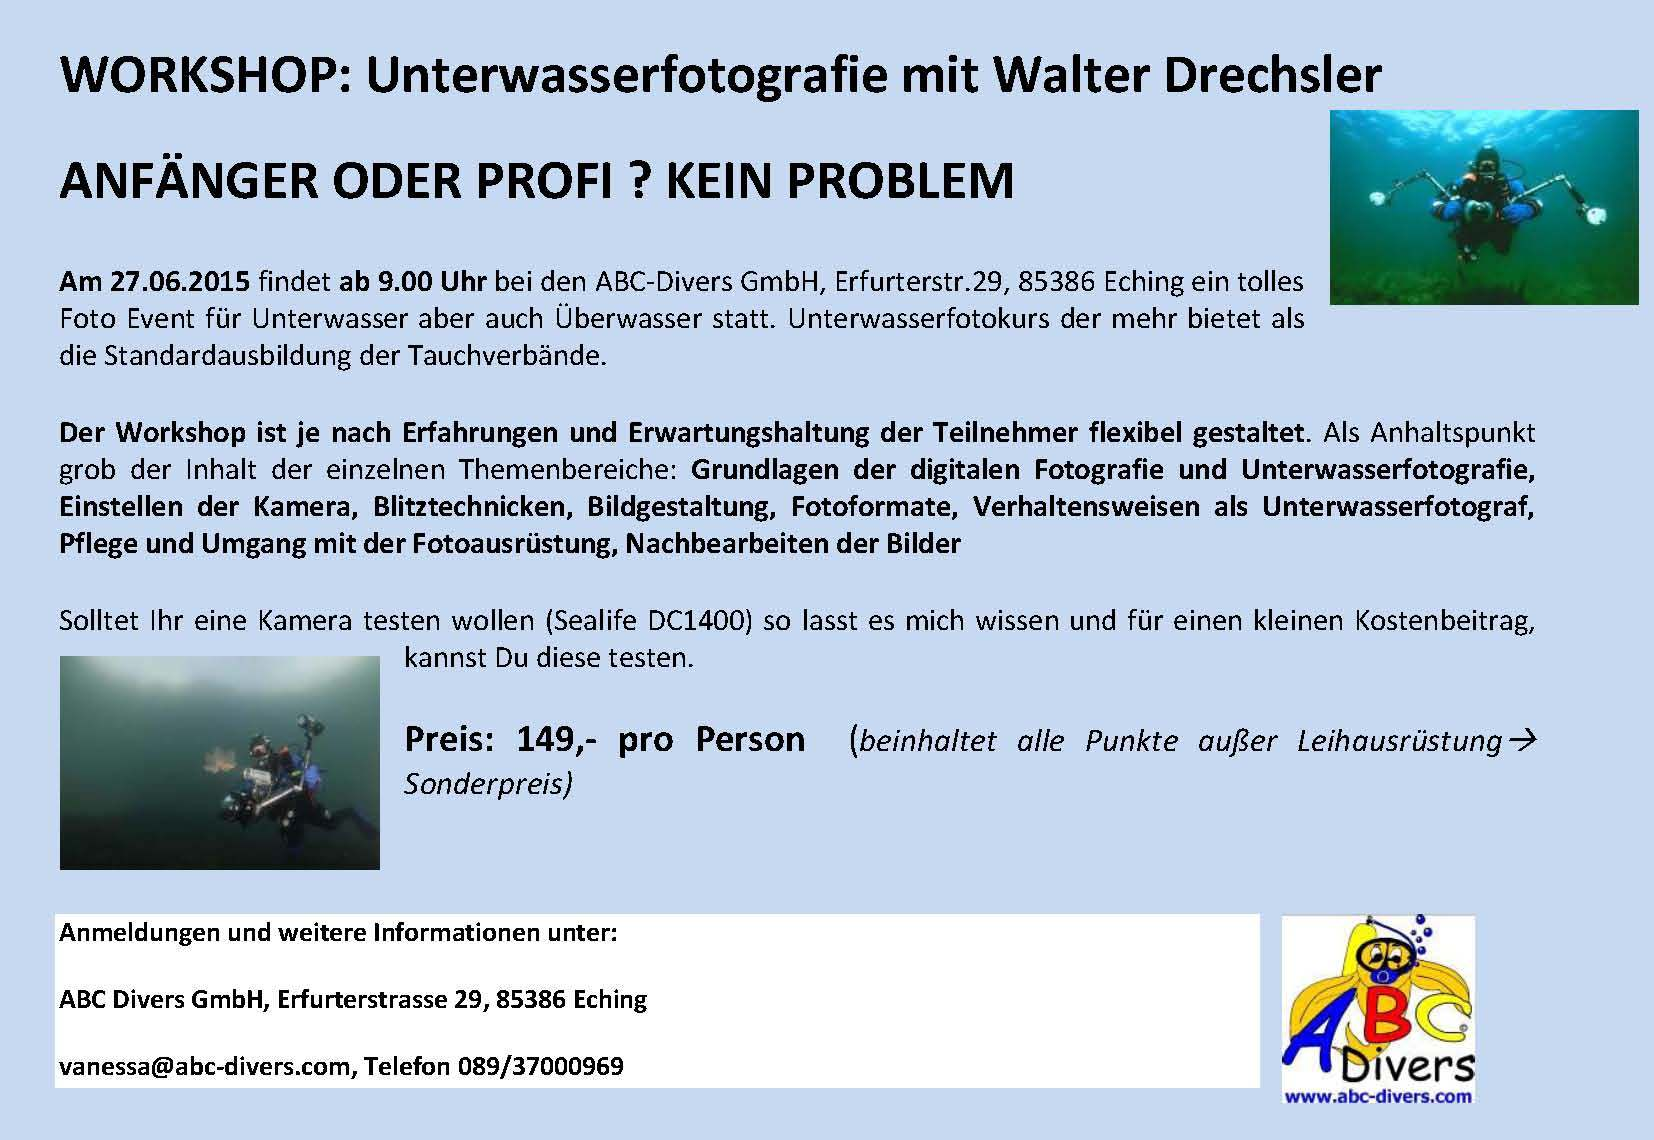 WORKSHOP DUP2015 - Flyer_Neu von Walter